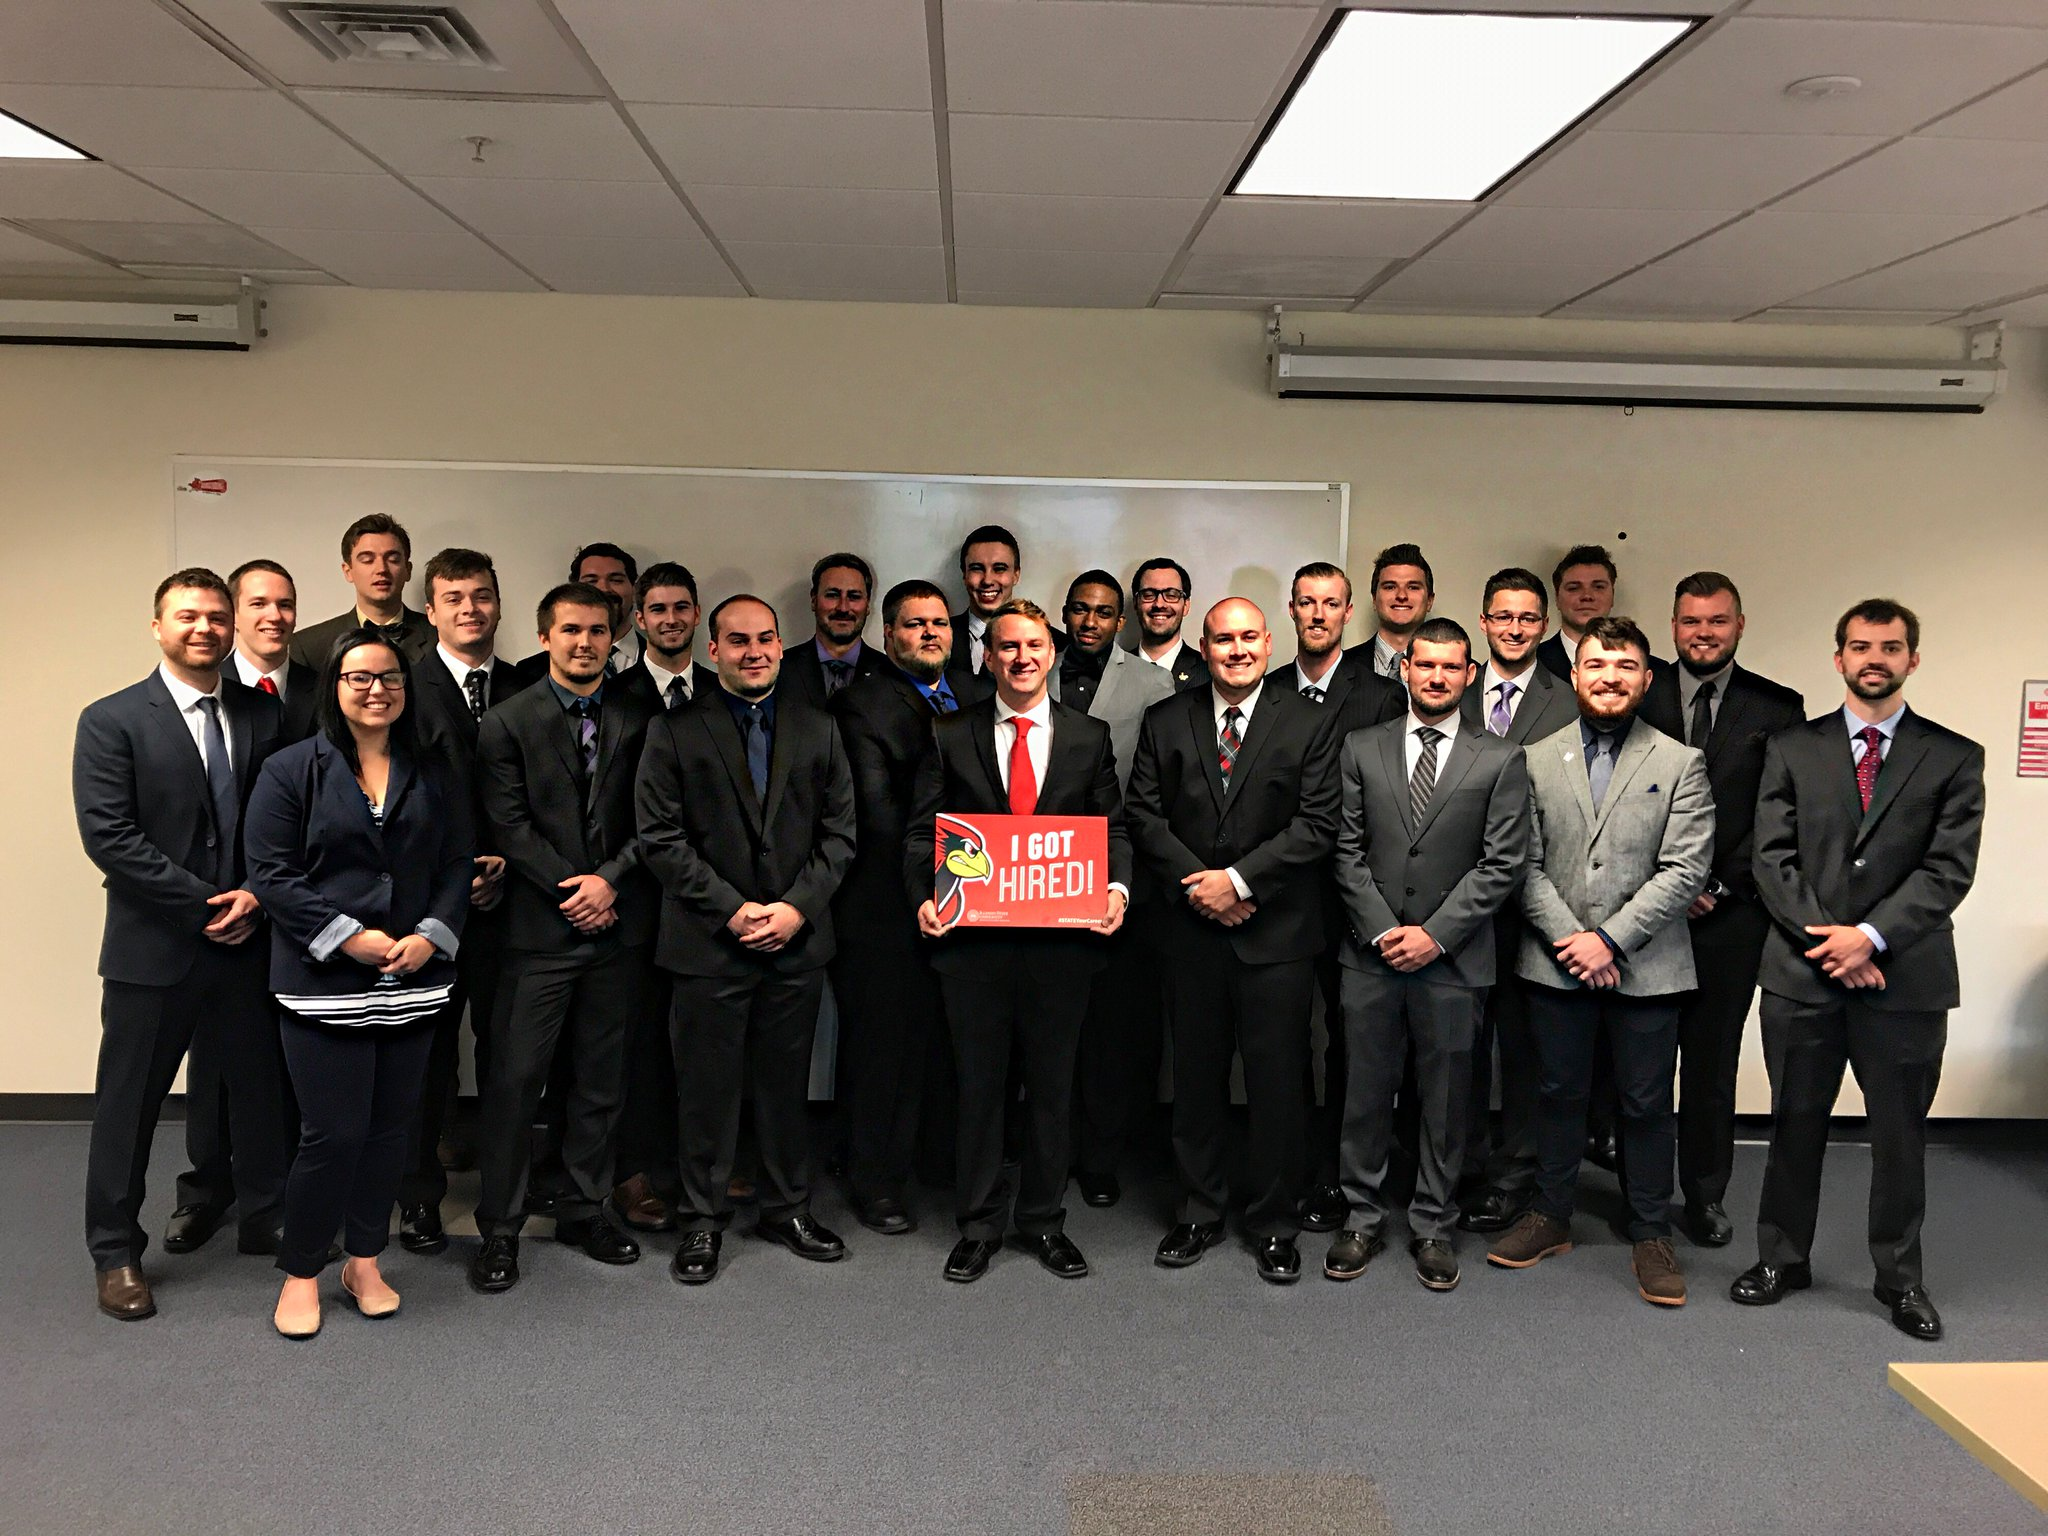 Check out all of our @ISU_TEC construction mgmt graduates!! Each one of them is on their way to a successful career! #STATEYourCareer https://t.co/WNAMESWNNW